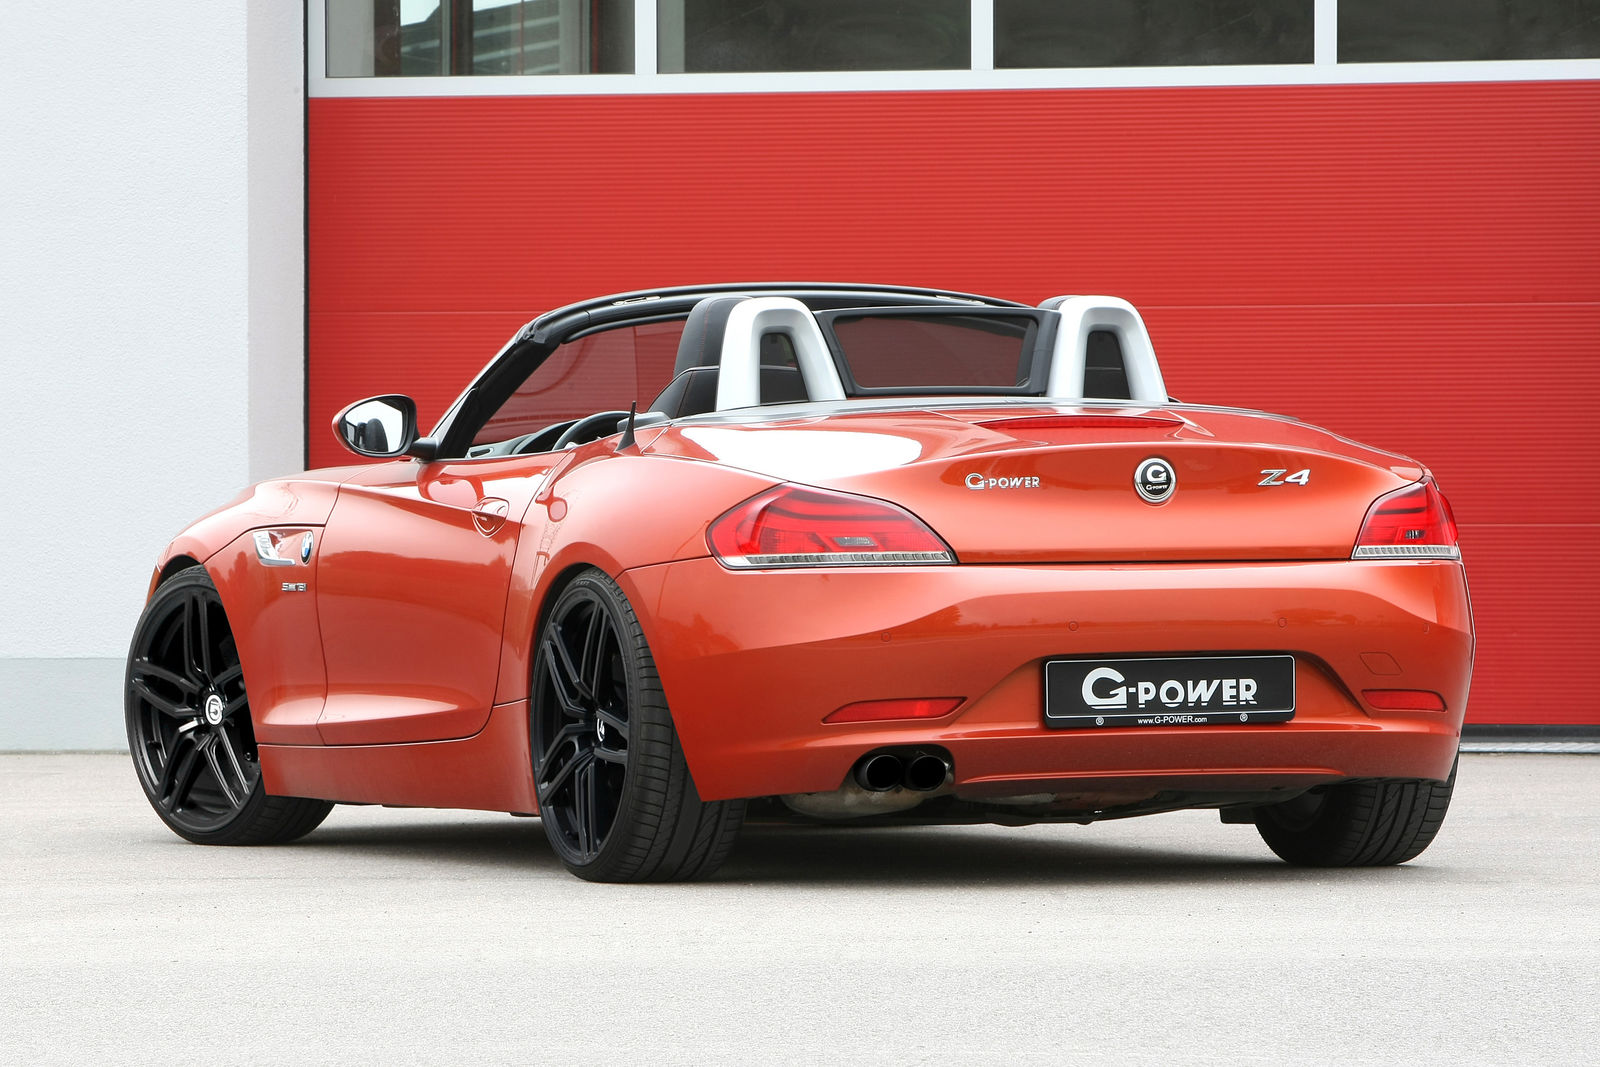 BMW_Z4_sDrive18i_by_G-Power_03